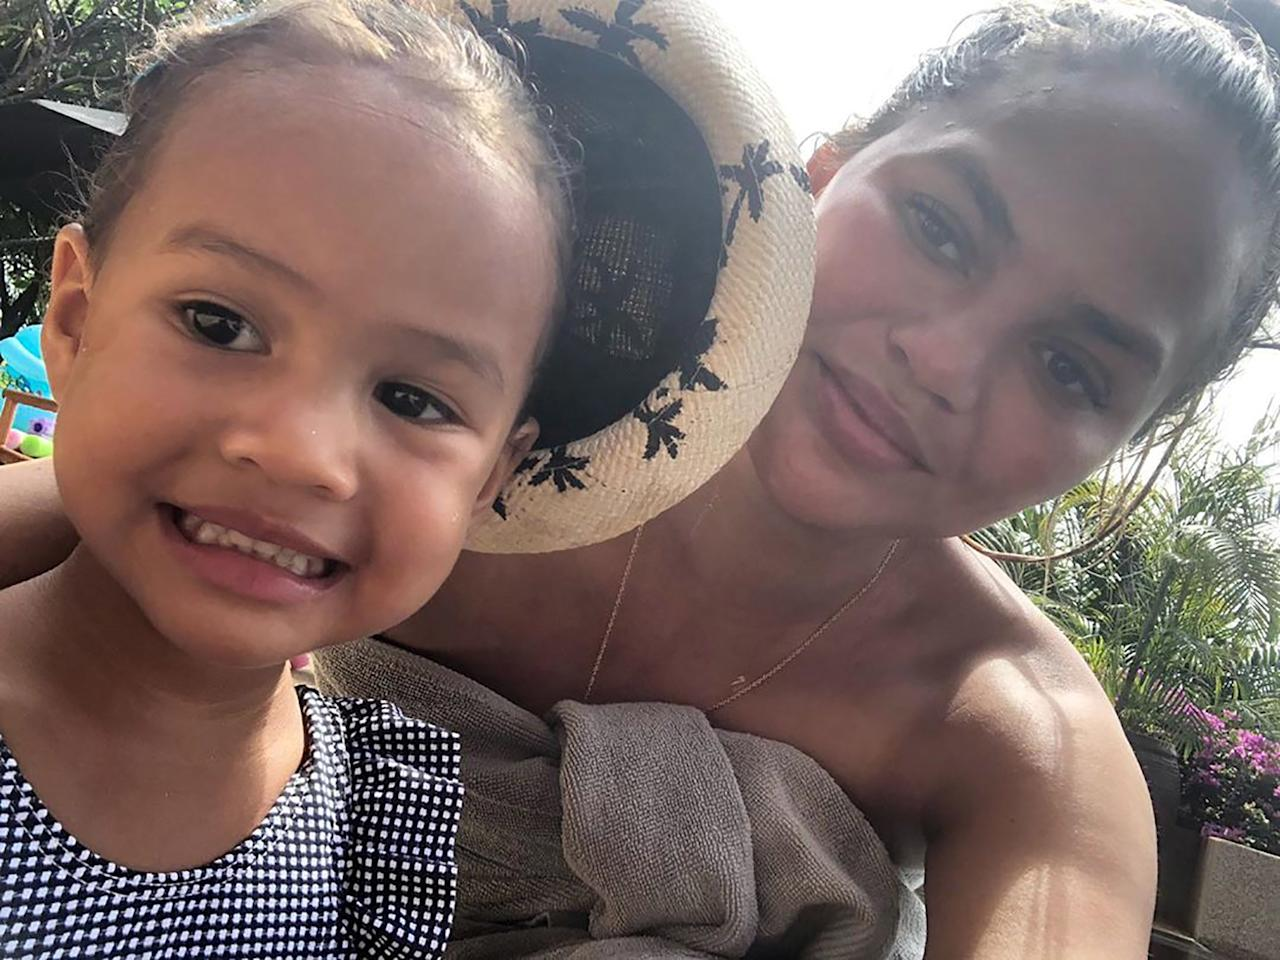 """While he may have reached EGOT status for his various talents, it seems there's one award that's still out of Legend's reach: <a href=""""https://people.com/style/john-legend-proves-good-instagram-husband-after-chrissy-teigen-jokingly-disses-him/"""">trophy Instagram Husband</a>. Teigen not-so-subtly called him out for not being considerate of """"angles or lighting or general photo ambience"""" during their photo-op filled getaway in a mock-modest <a href=""""https://www.instagram.com/p/B1lFB0uhj_E/"""">Instagram post</a>.  """"I never have pictures of myself because I am selfless and am the designated photo taker and keeper for my family and no one else seems to care to be thoughtful and take good photos of me they merely click them off without paying attention to angles or lighting or general photo ambience,"""" she captioned a smiling selfie of her and Luna. In case the """"All of Me"""" singer didn't take the hint, she added, """"but it's okay. such is the life I chose. (To john).""""  <a href=""""https://www.instagram.com/p/B1lahHMl0Fc/"""">Comments by Celebs</a> captured his response, which he kept short and sweet: """"Wow."""""""